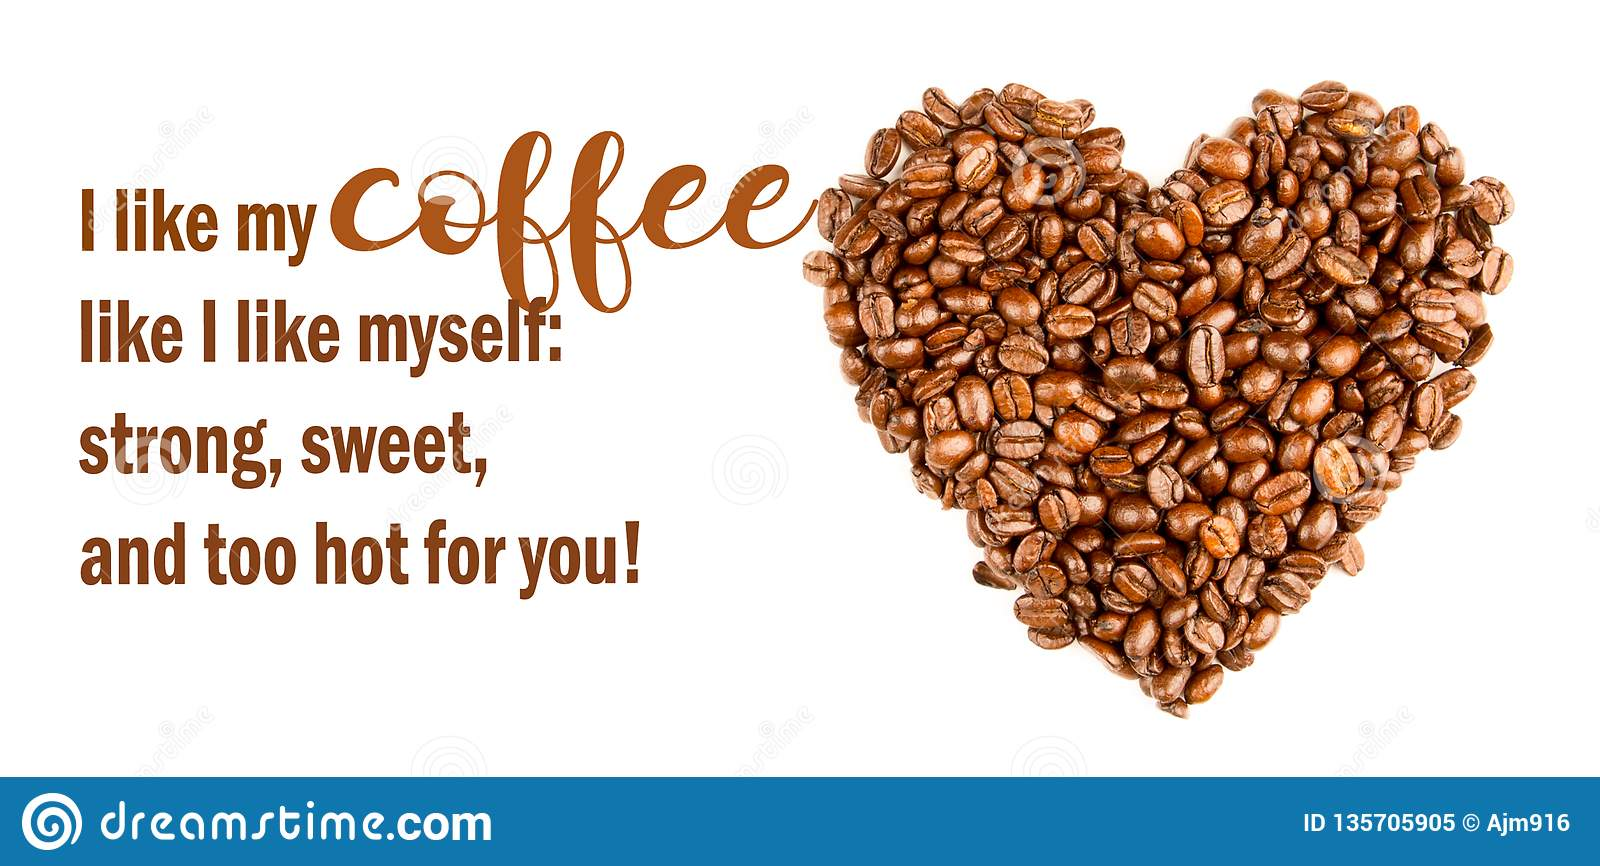 Funny Coffee Memes Sassy,Coffee Sweet As Love. Cool Quotes Stock ... #iLoveCoffee